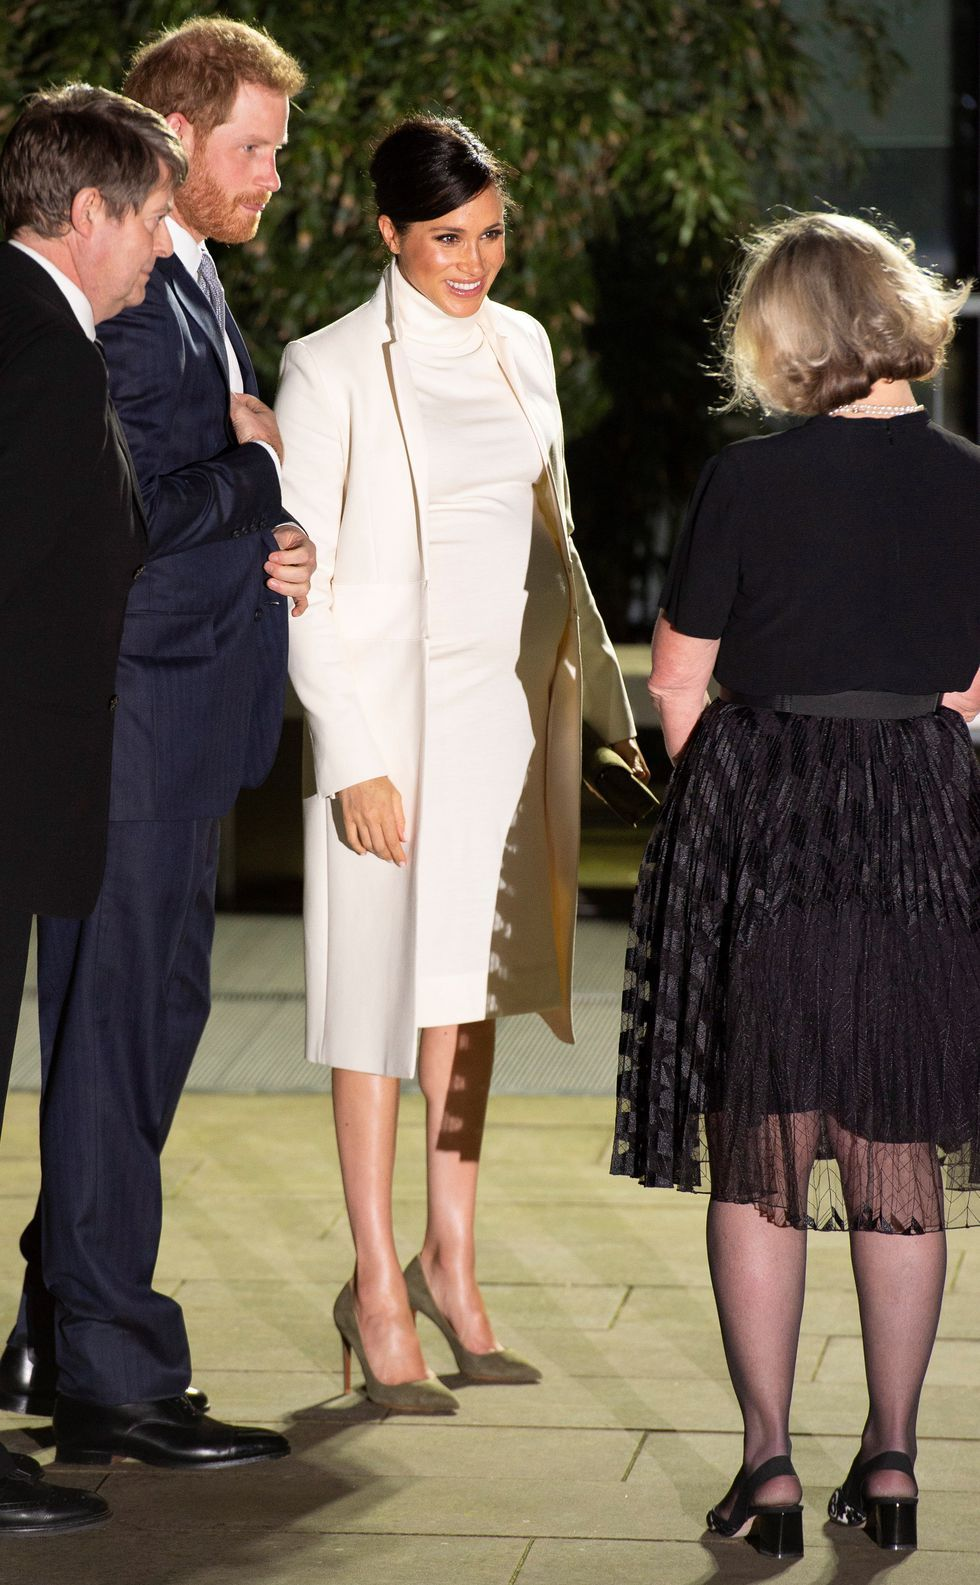 britains-prince-harry-duke-of-sussex-and-meghan-duchess-of-news-photo-1124279359-1549999593.jpg